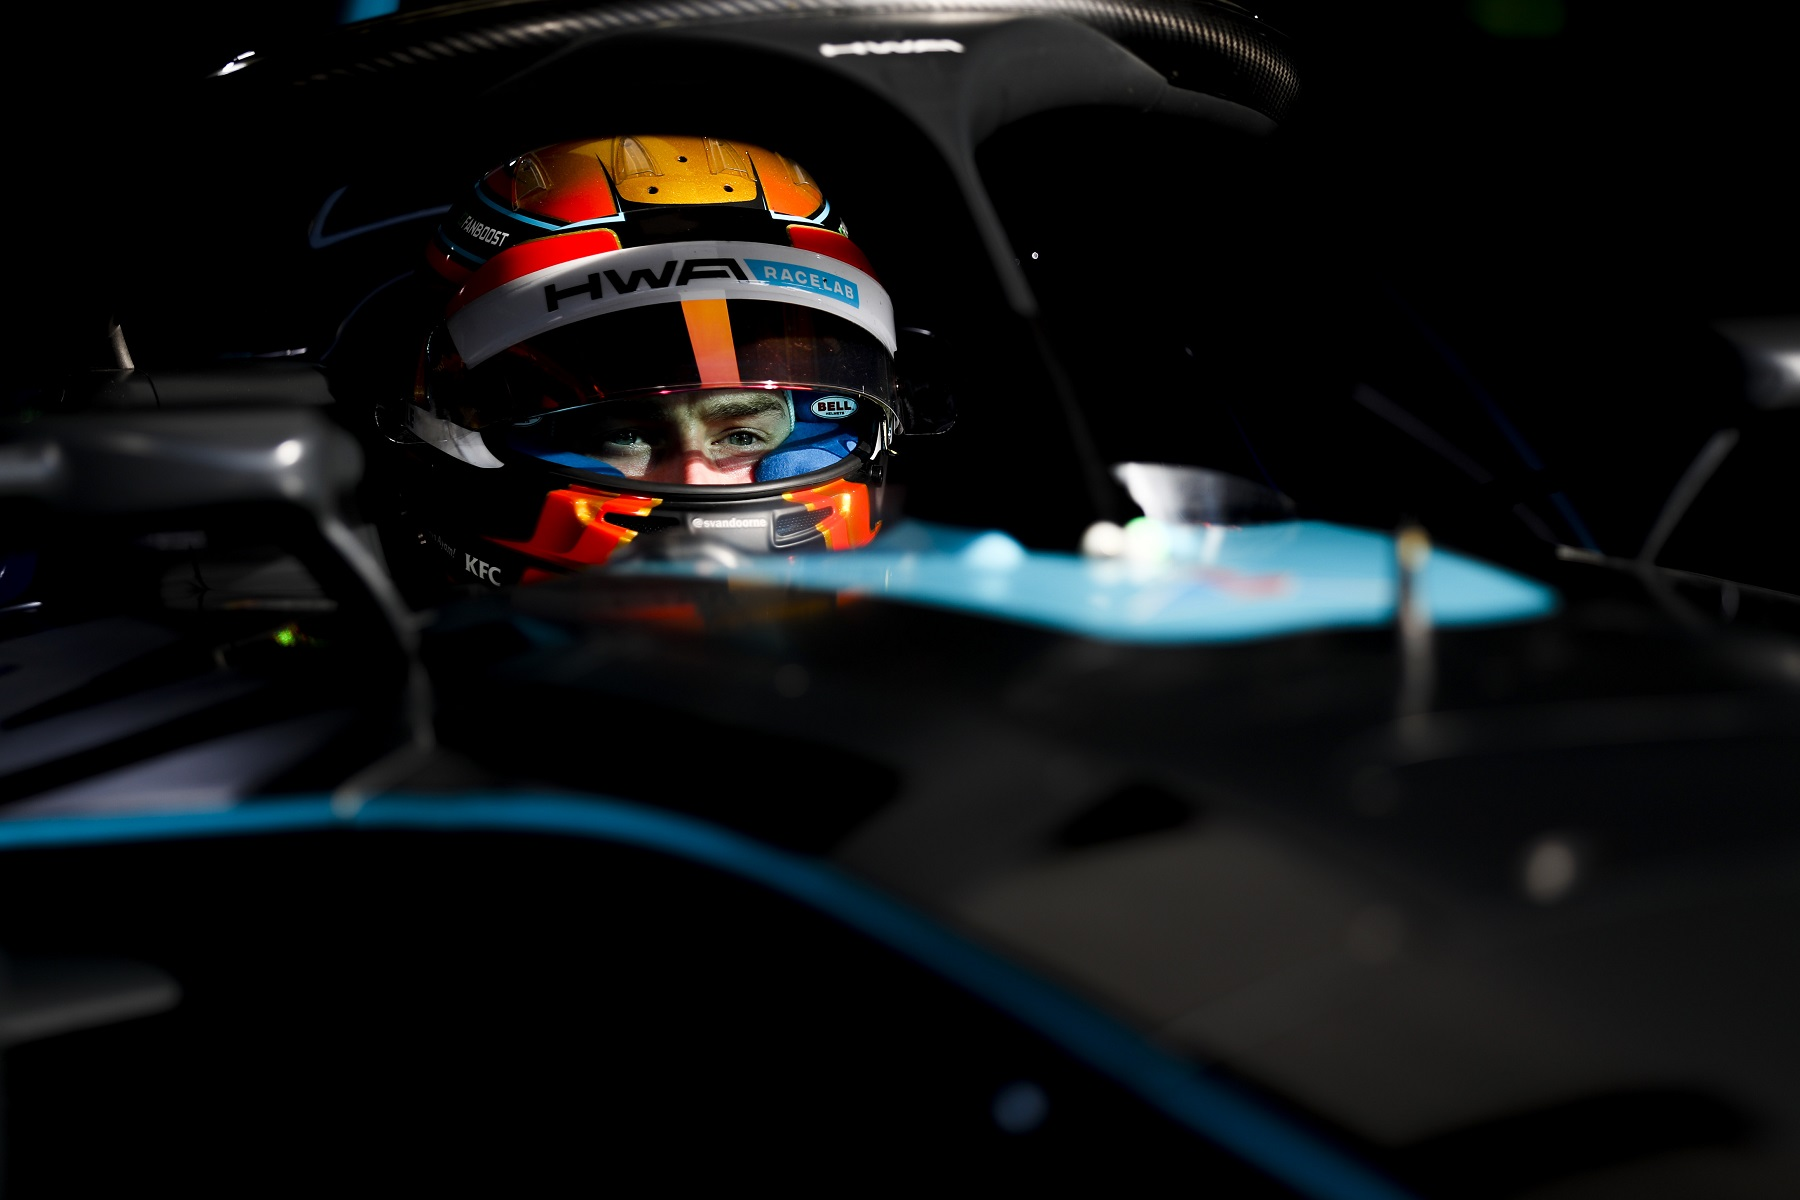 Berlin-Top8-Stoffel-Vandoorne-HWA-Racelab-Helmet-closeup-in-car.jpg